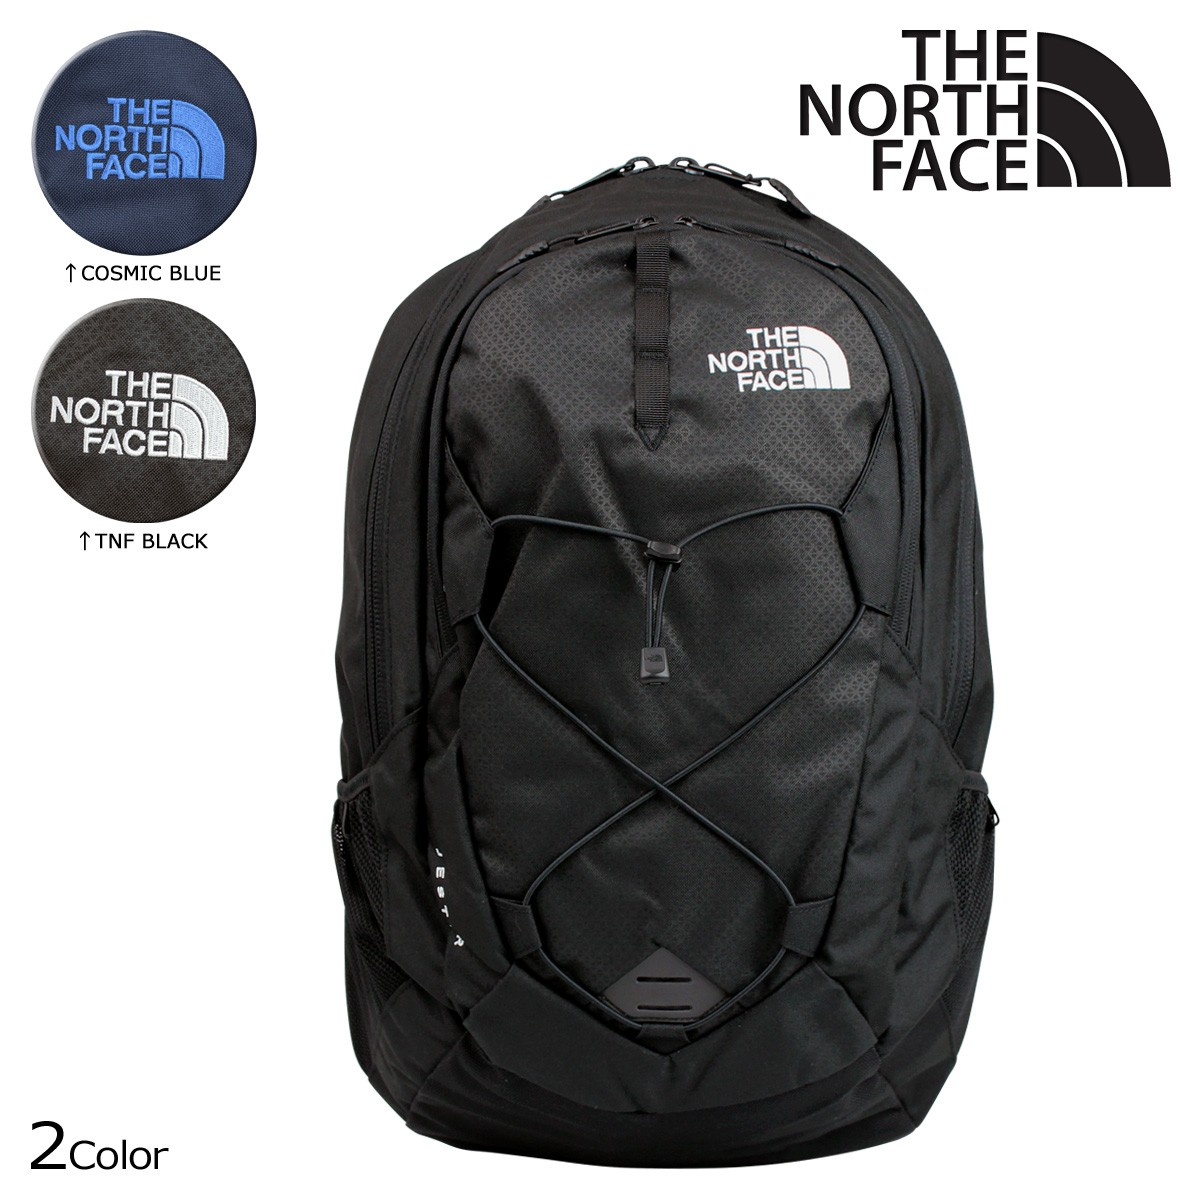 THE NORTH FACE JESTER BACKPACK 26L ノースフェイス リュック バックパック メンズ レディース [予約商品 4/10頃入荷予定 再入荷] [194]